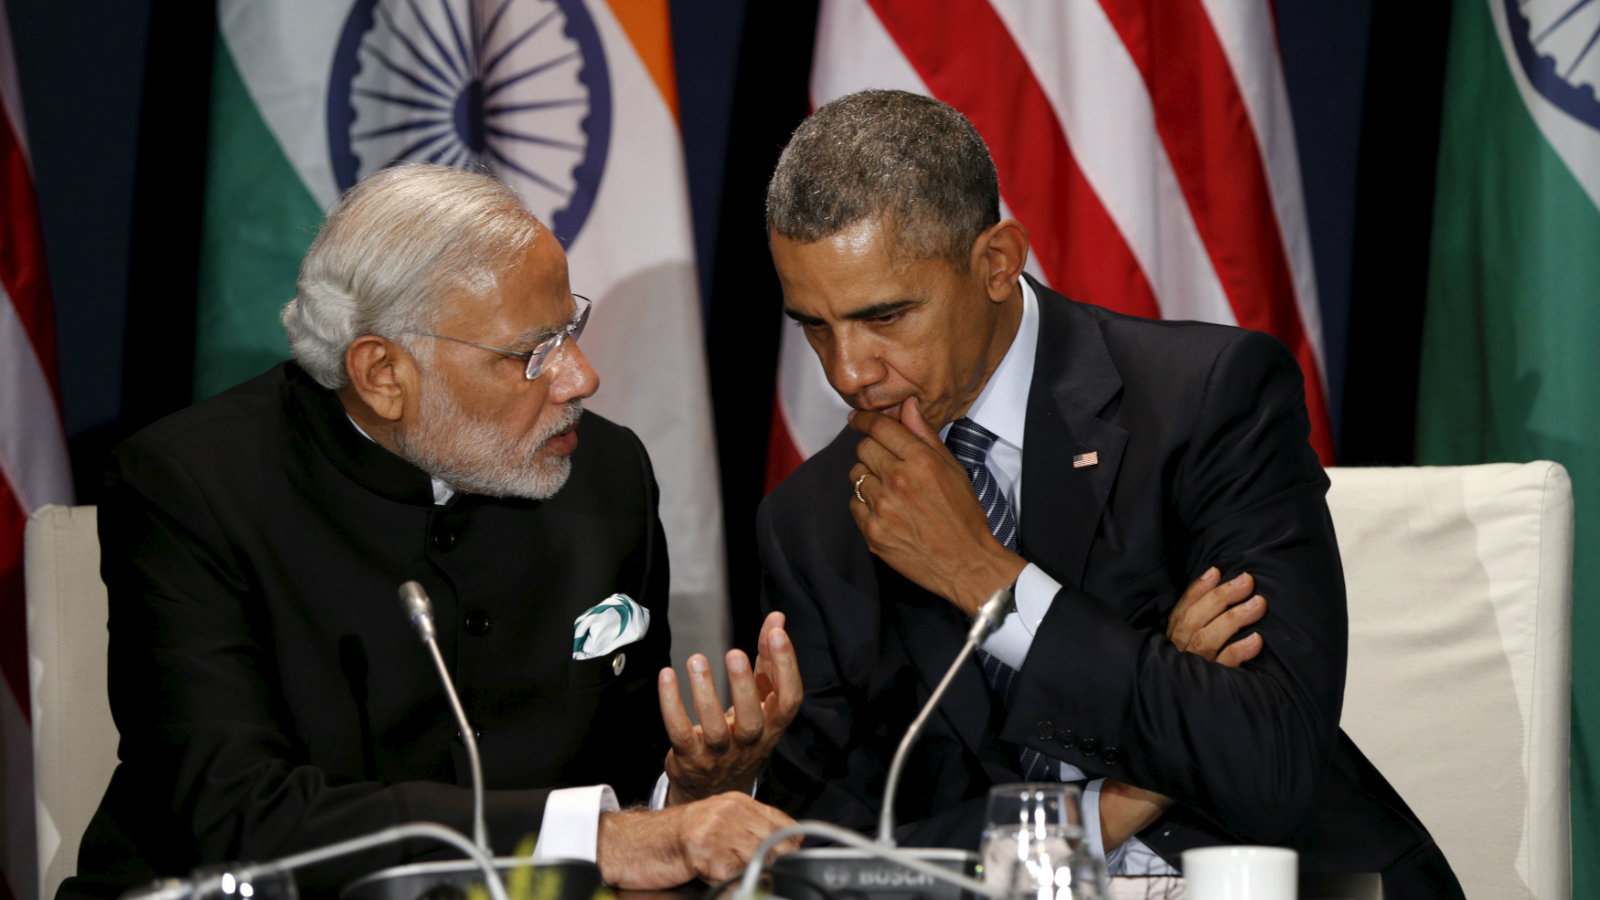 US President Barack Obama (R) meets with Indian Prime Minister Narendra Modi at the climate change summit in Paris, Nov. 30, 2015.